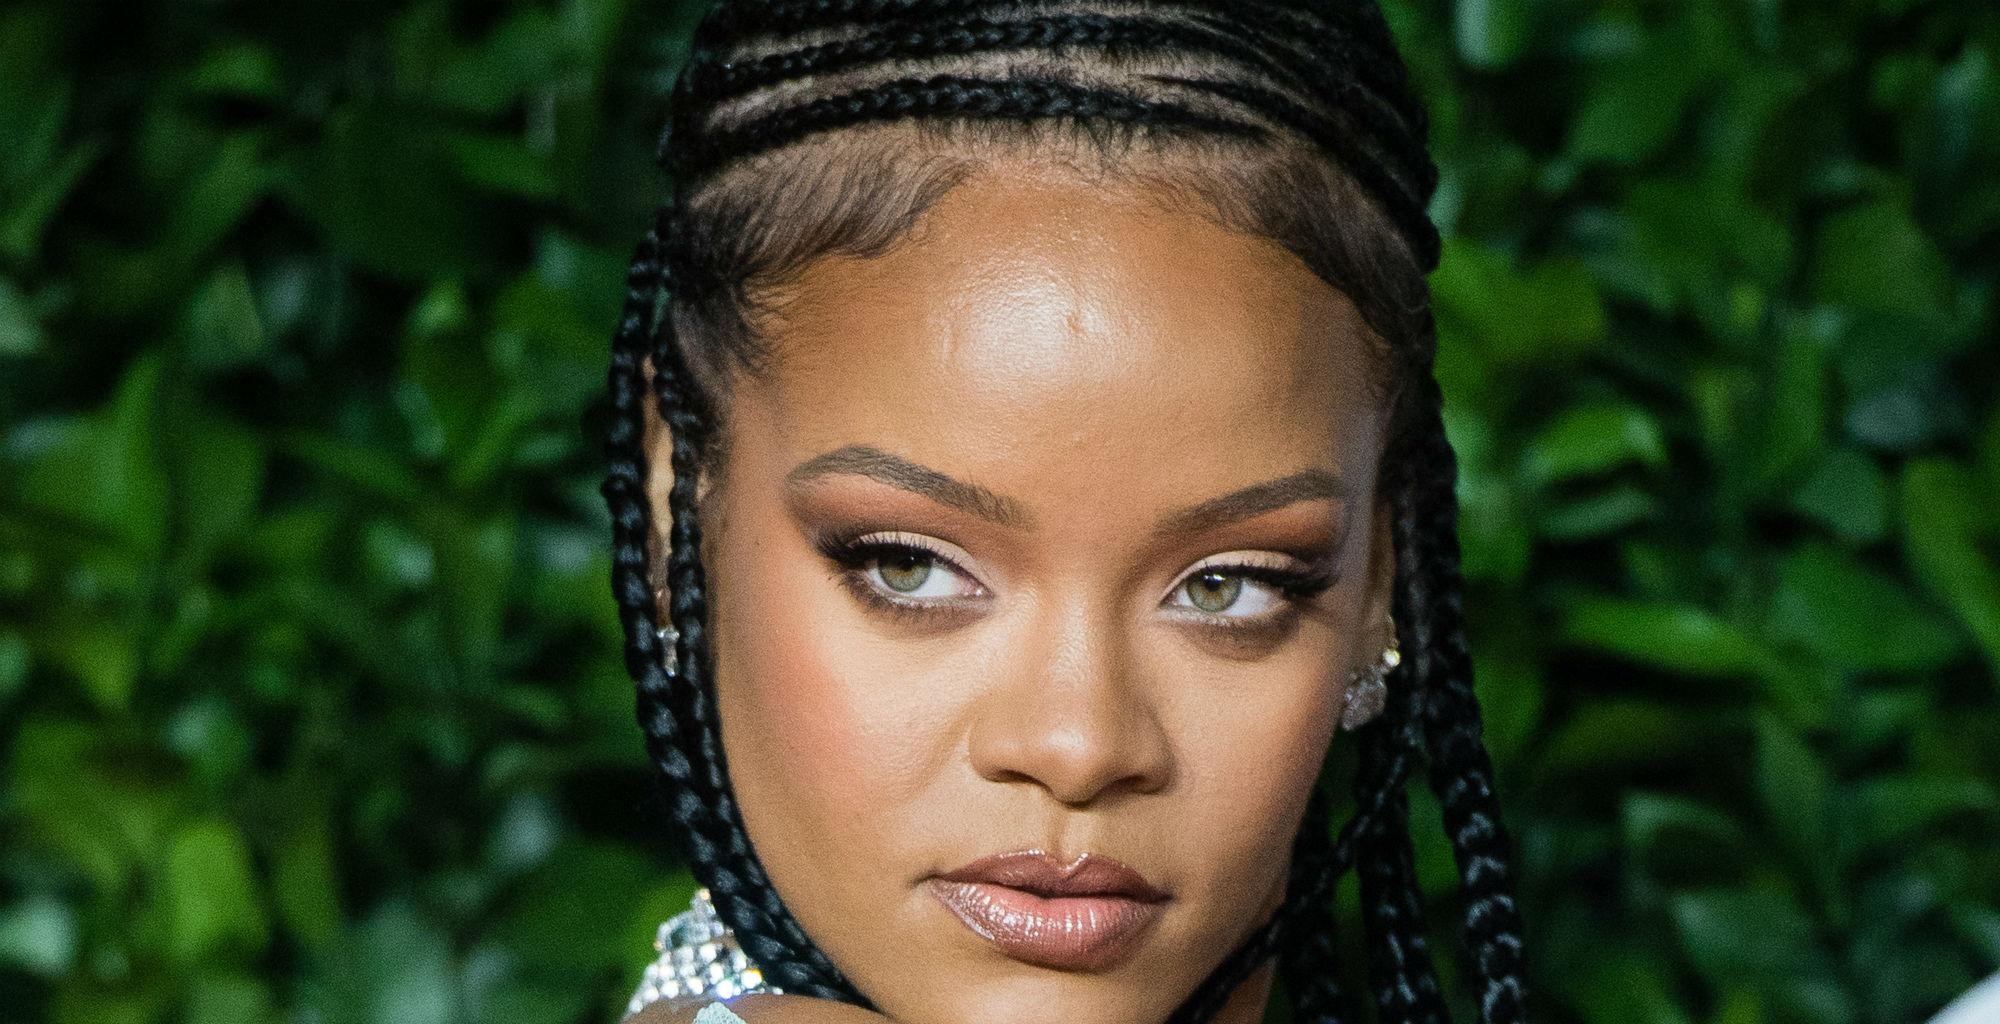 Rihanna Looks Sultry And Mysterious In A Sheer New Lingerie Set From Her Collection - Check It Out!